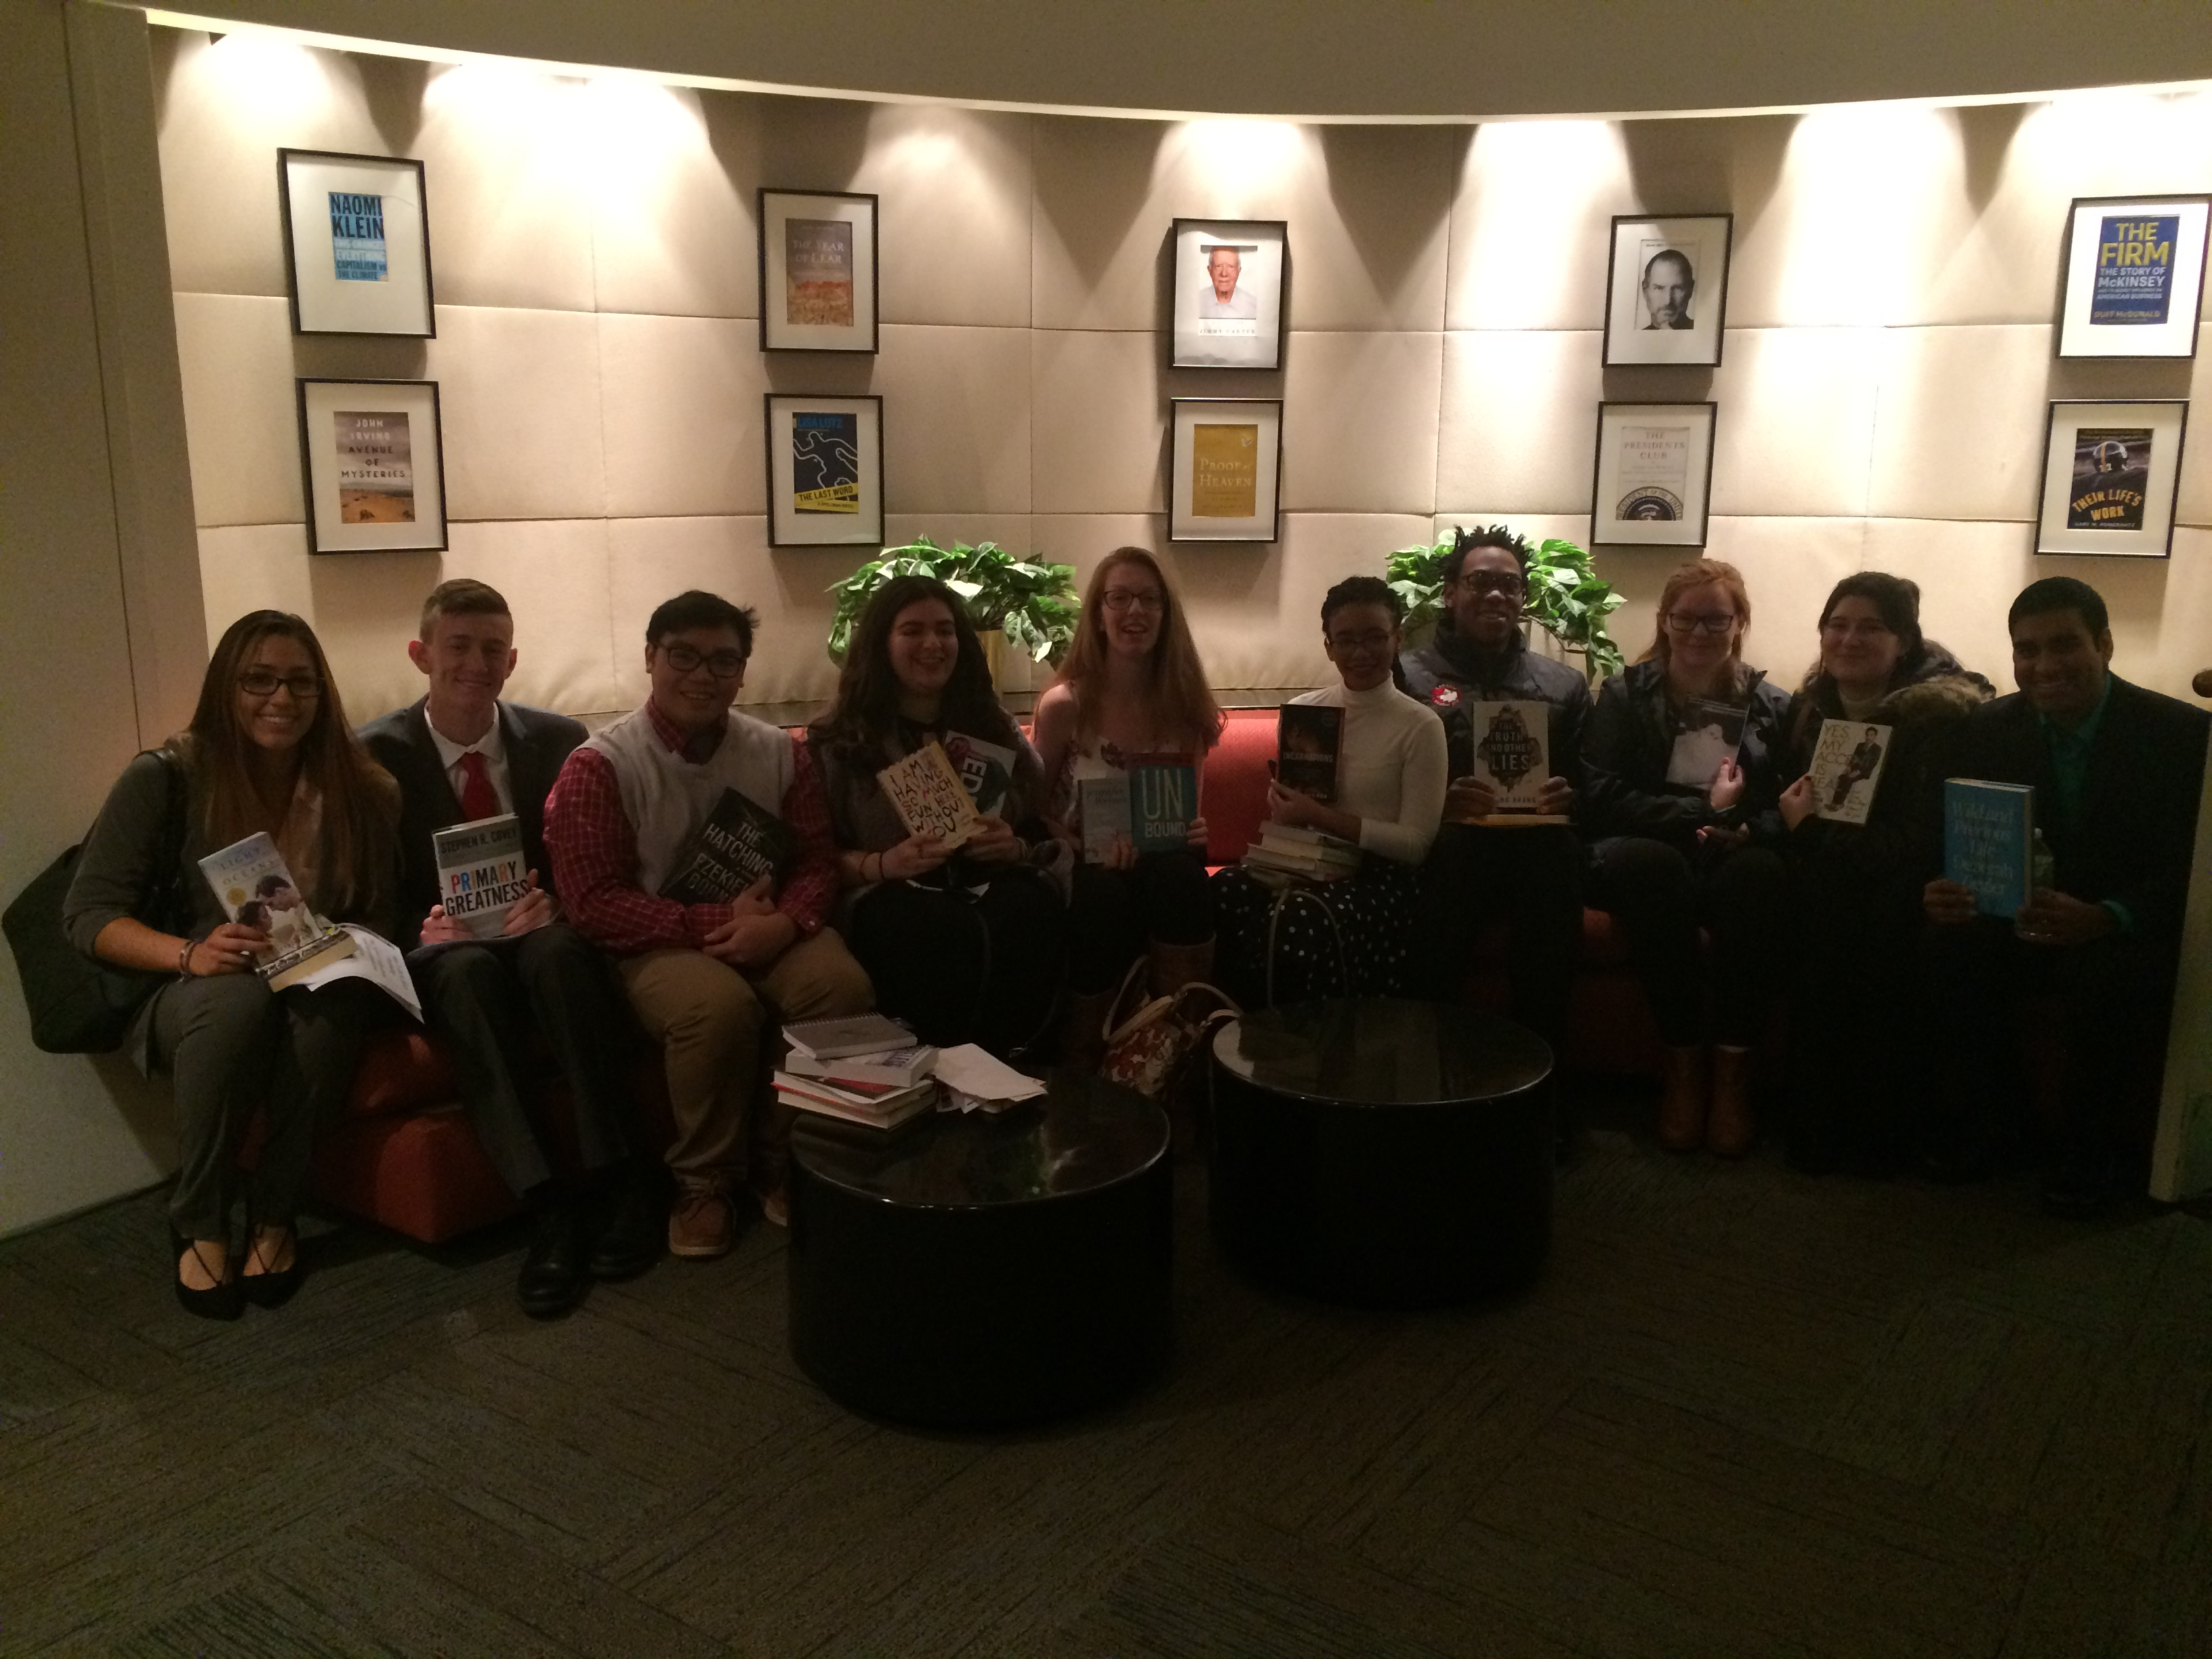 Students at Simon and Schuster Book Offices